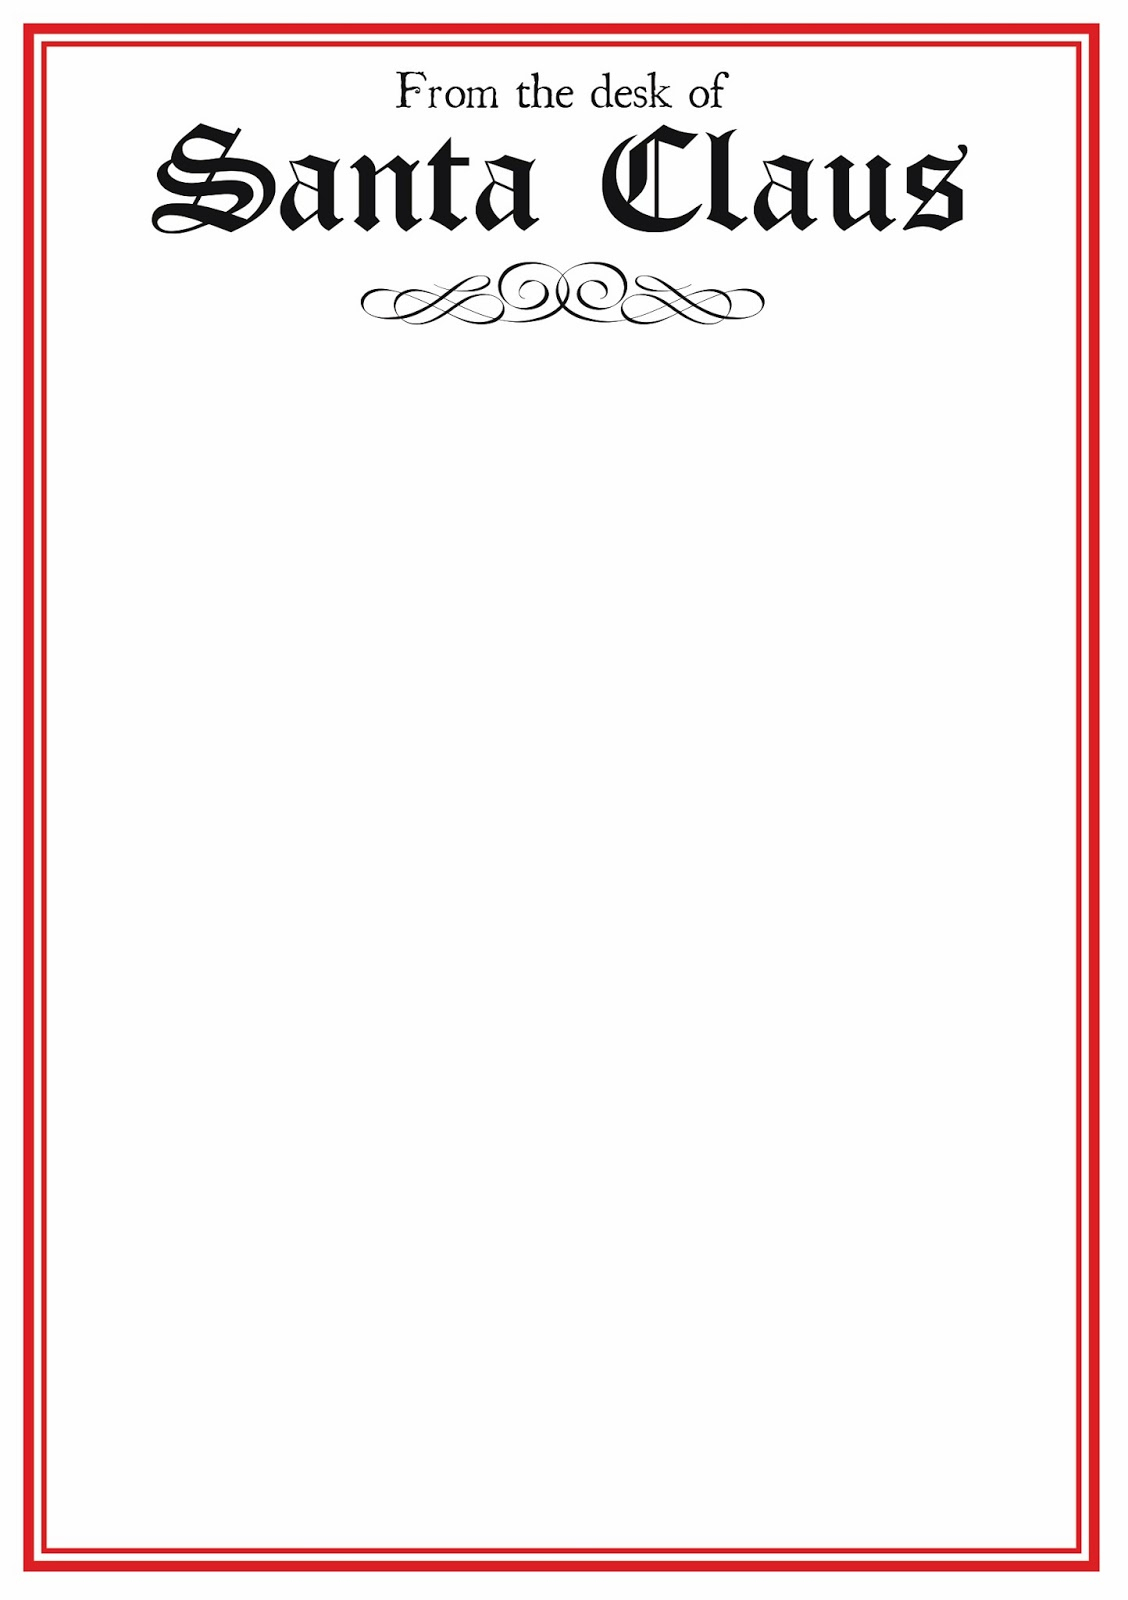 Free Printable Letter From Santa Word Template Samples | Letter - Free Printable Letter Templates